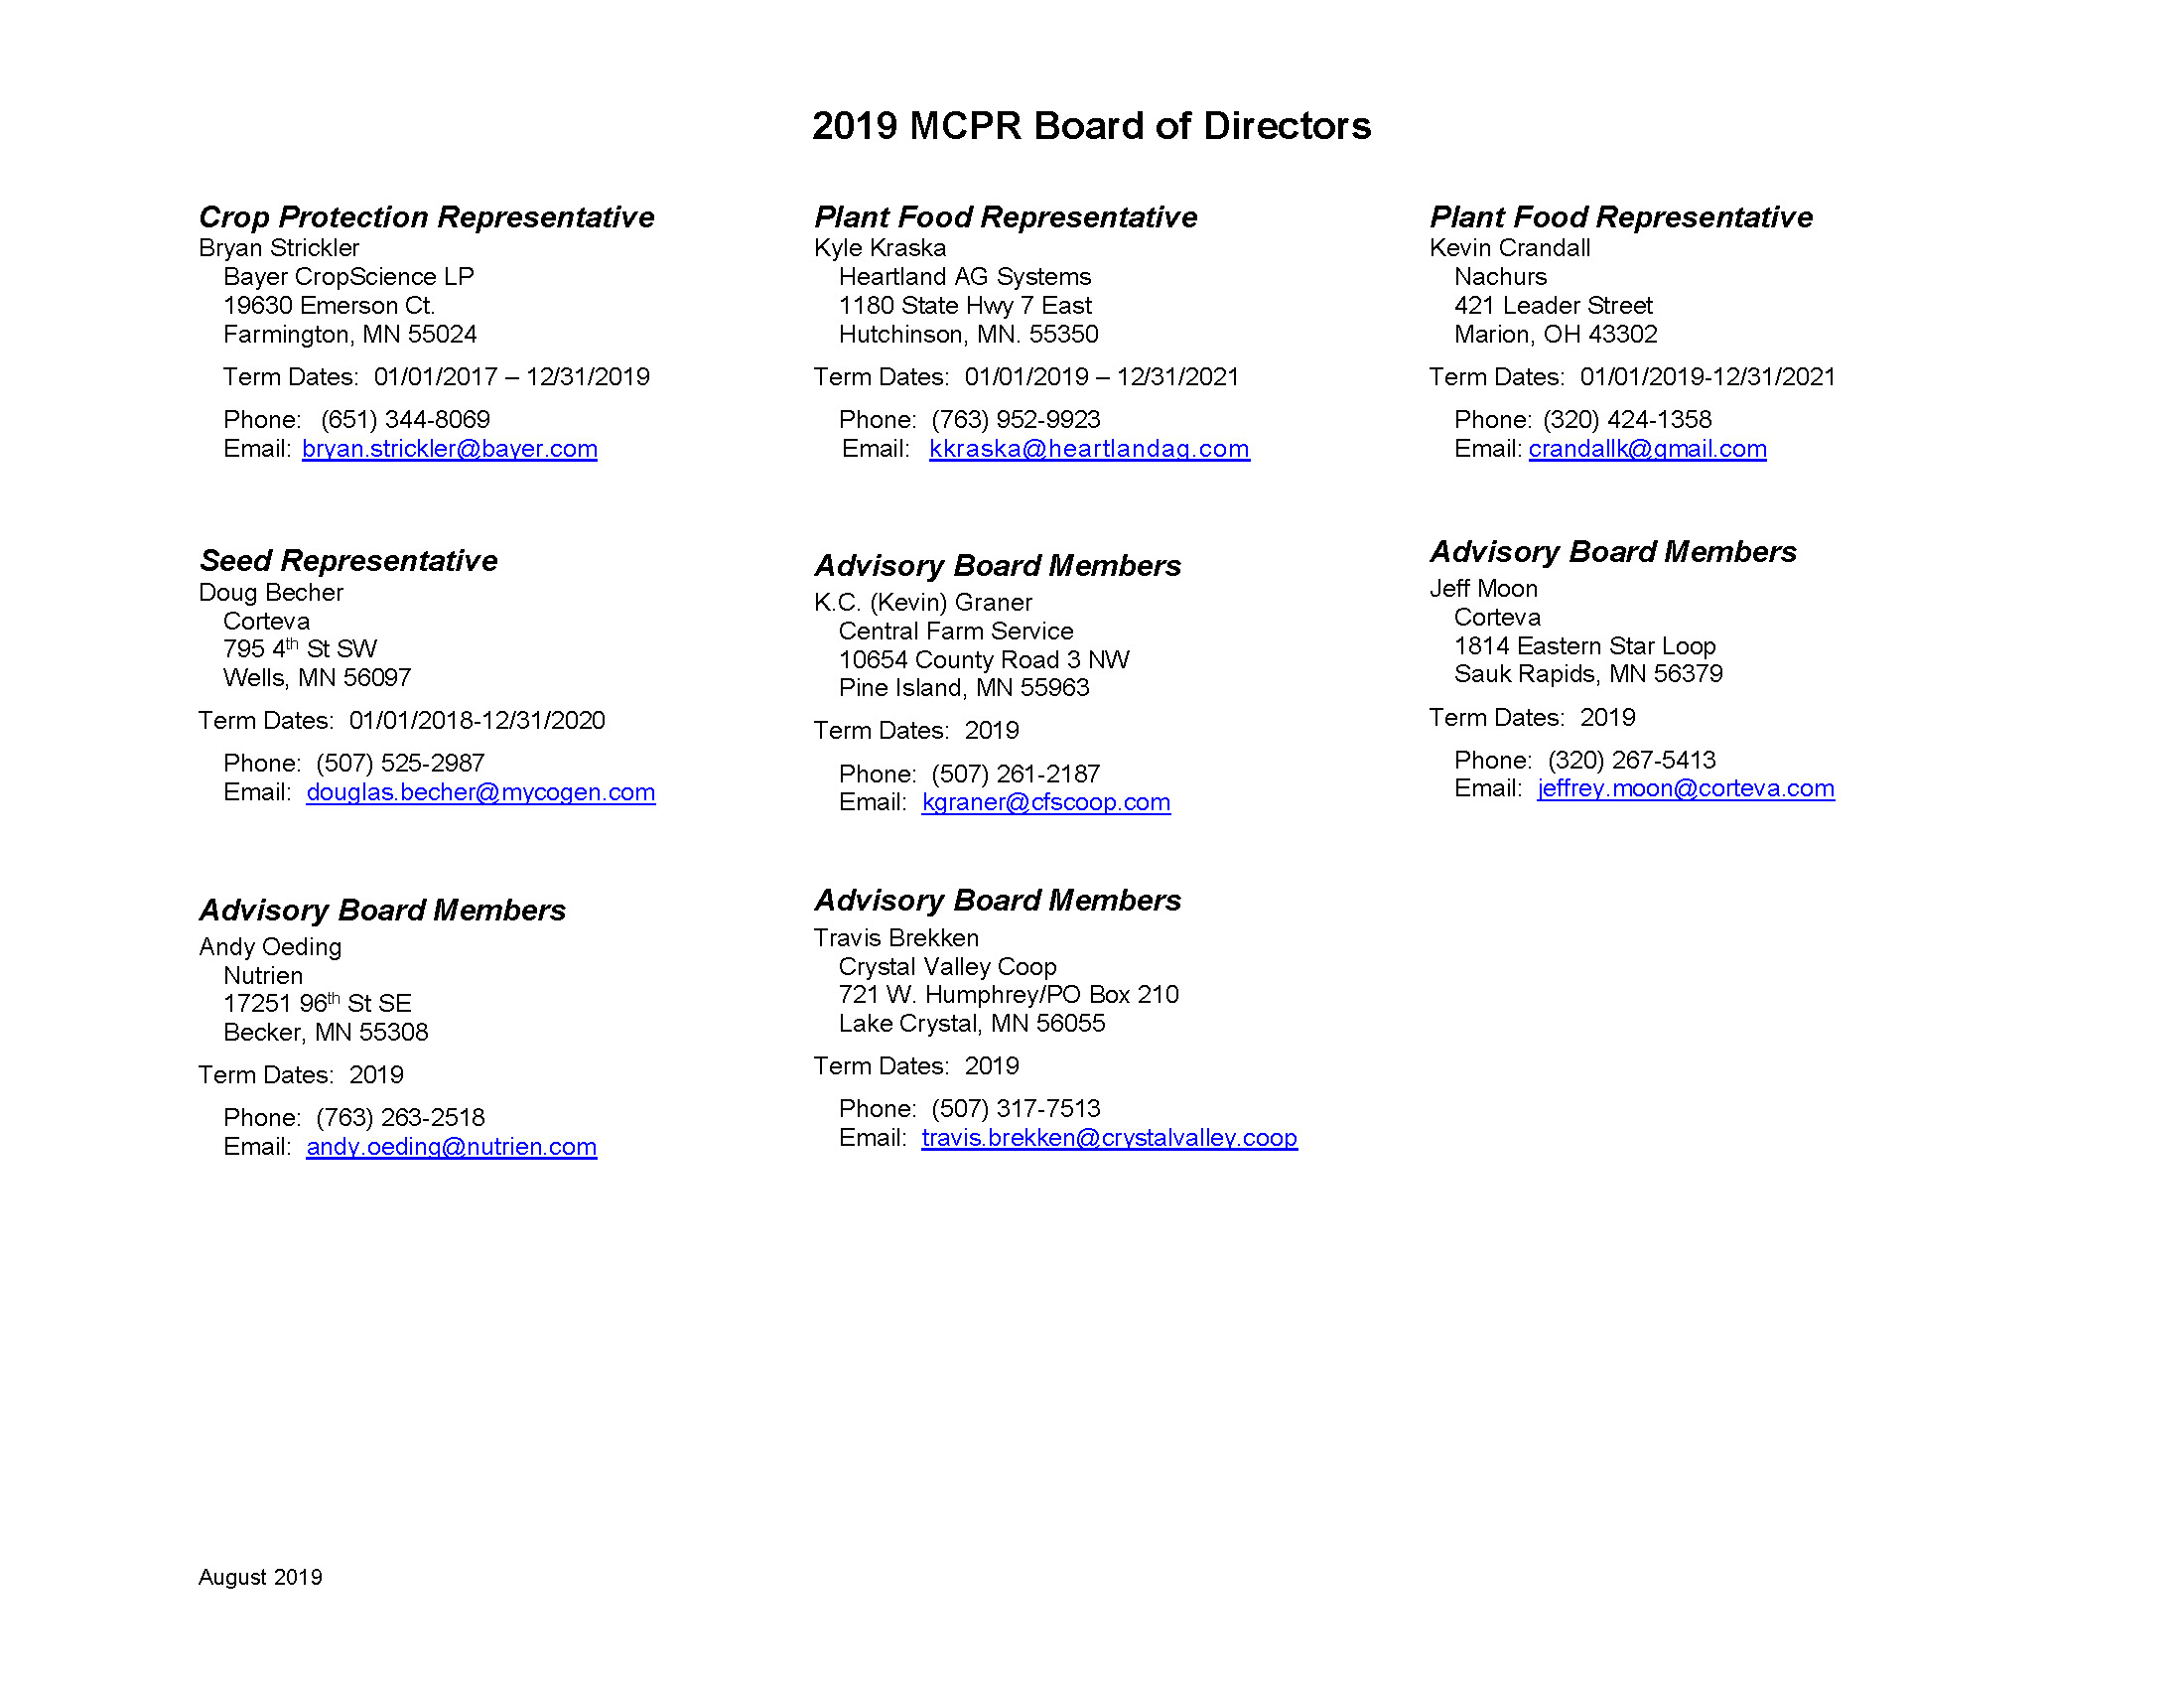 2019 MCPR Board of Directors_August_2019_Page_2